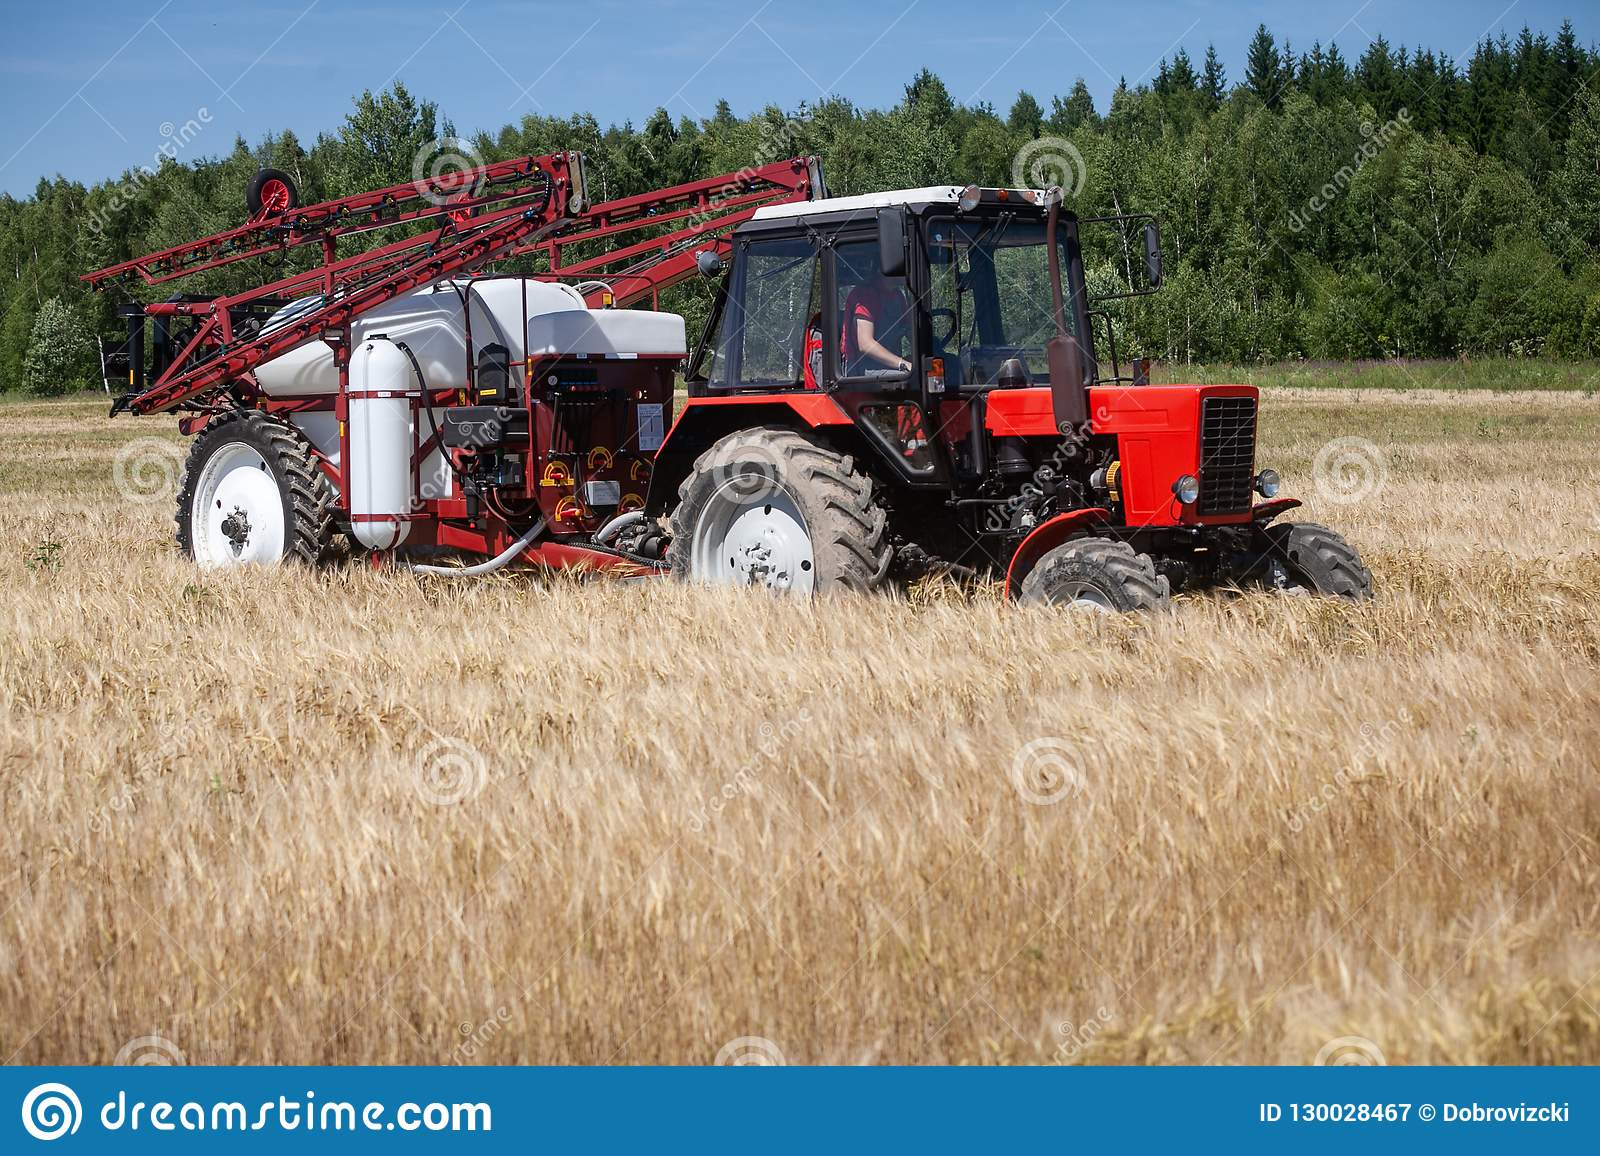 Red tracktor sprayer in the field